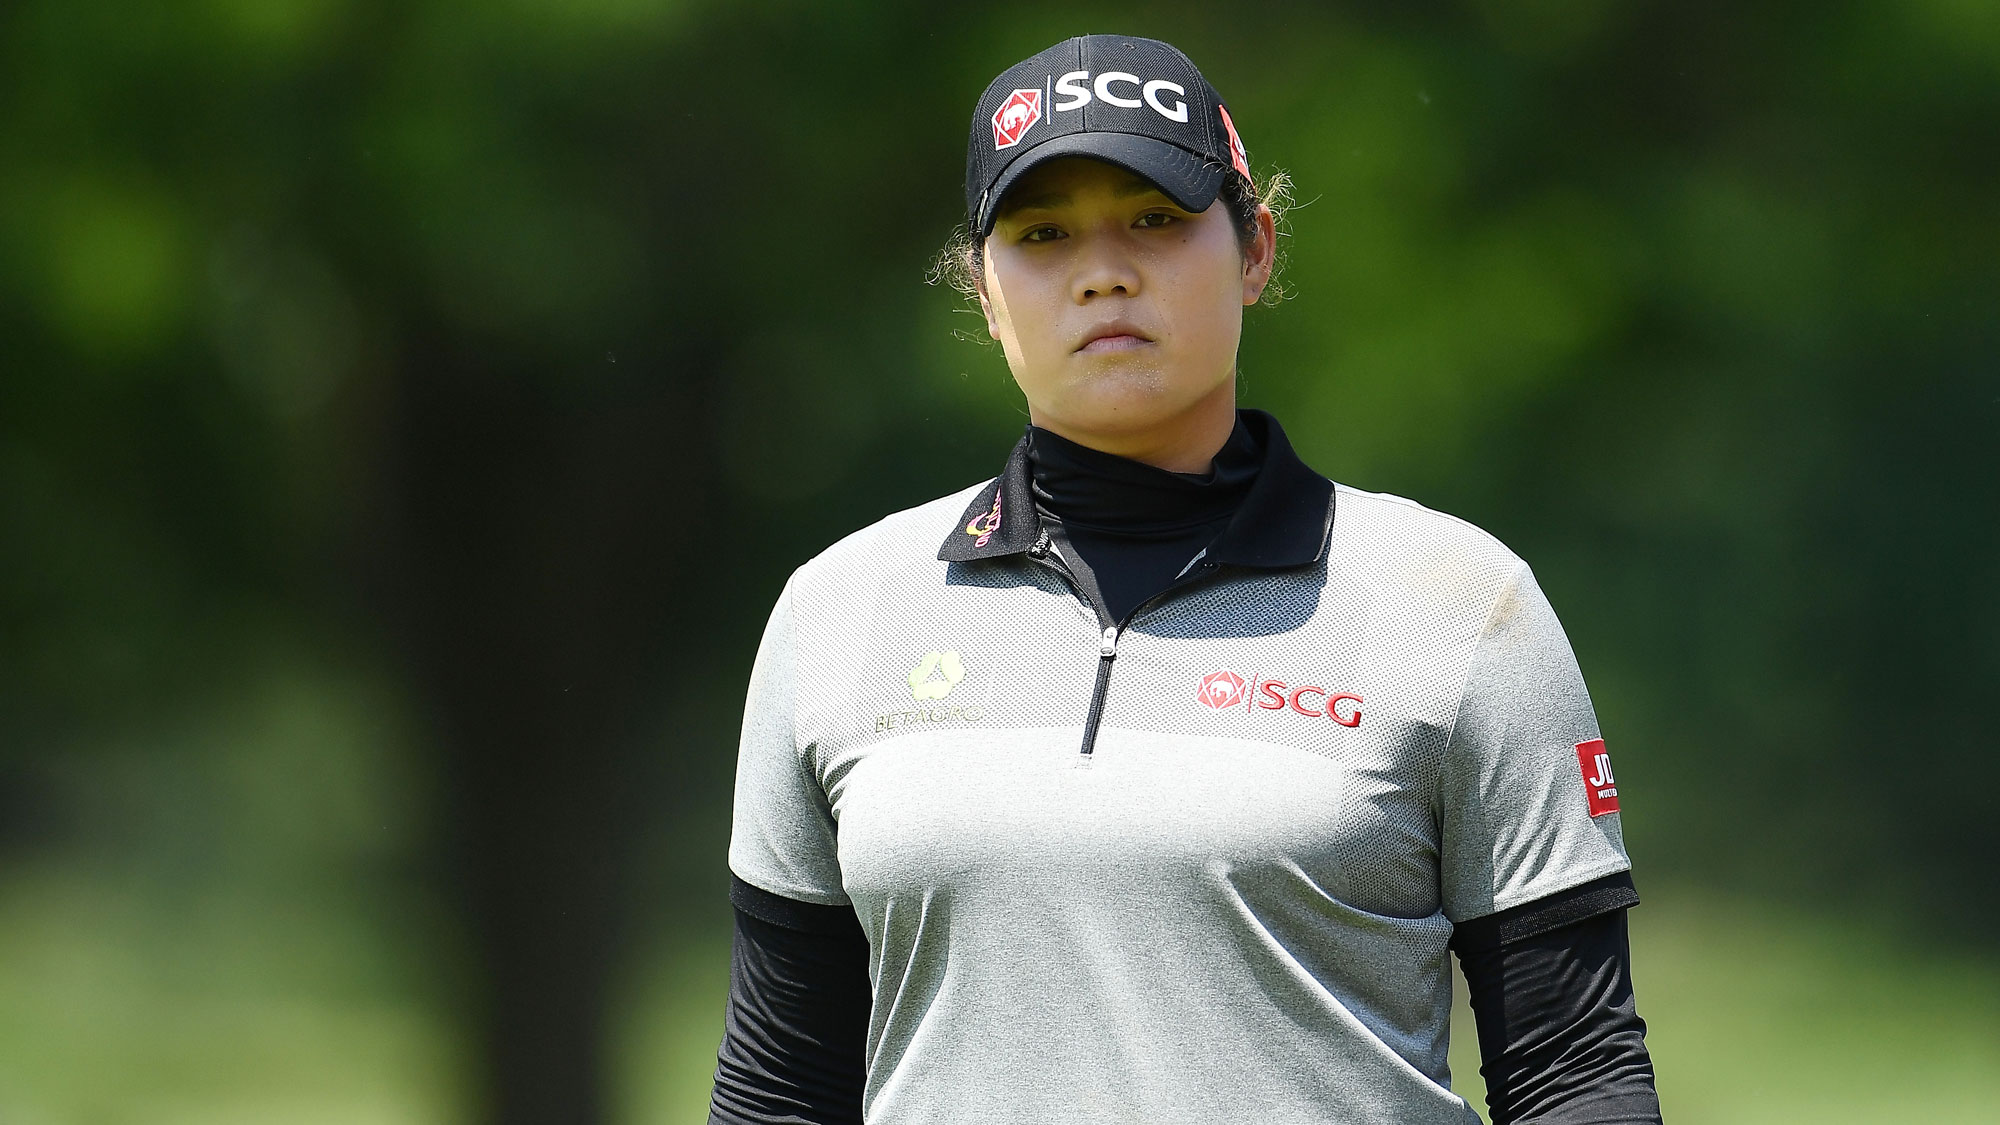 Ariya Jutanugarn Flirted with a 59 on Sunday